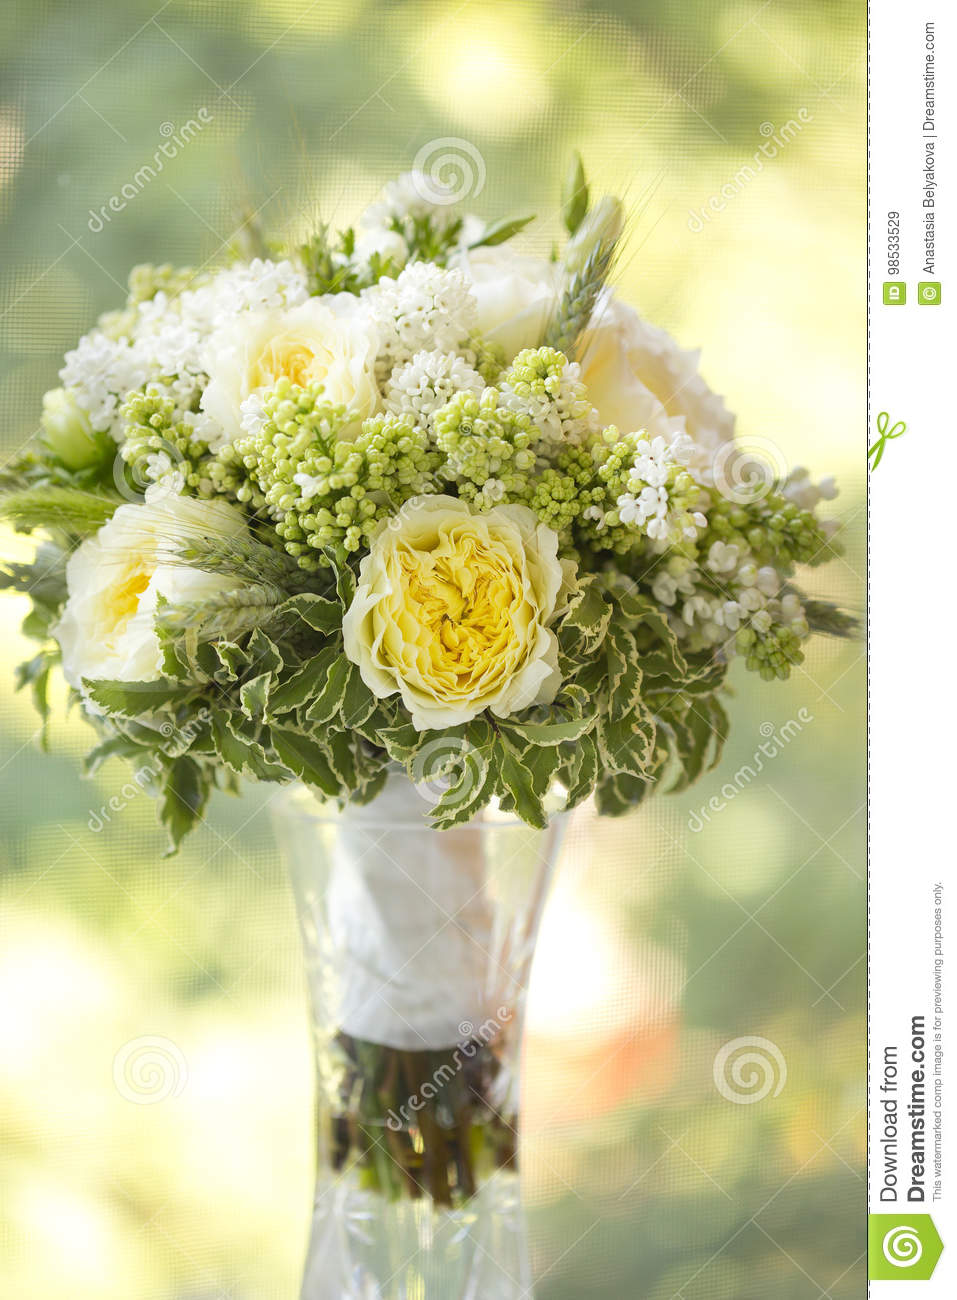 Wedding Bouquet Of White And Yellow Flowers Stock Image Image Of